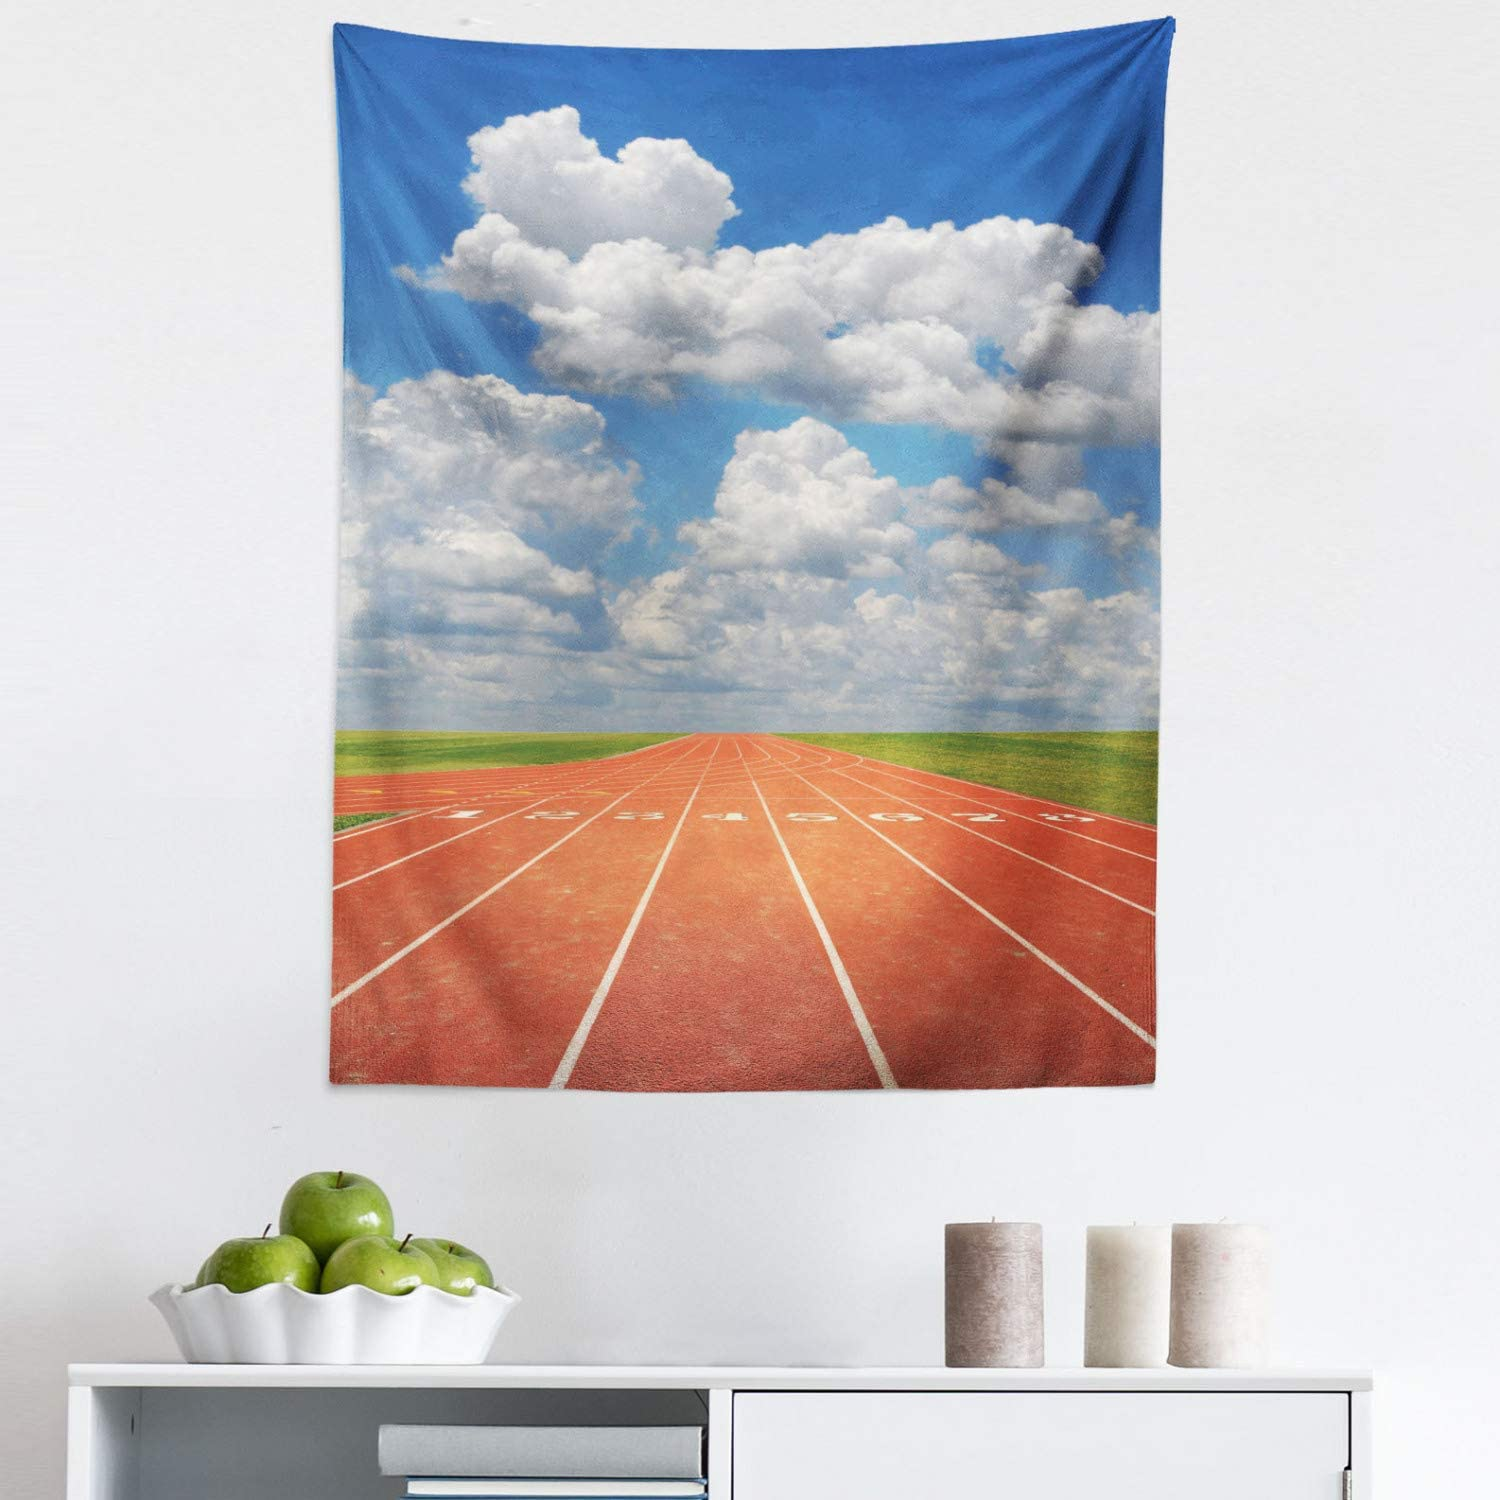 """Lunarable Olympics Tapestry, Sports Competition Running Track on a Sunny Day Lawn Grass Field Cloudy, Fabric Wall Hanging Decor for Bedroom Living Room Dorm, 23"""" X 28"""", Sky Blue"""